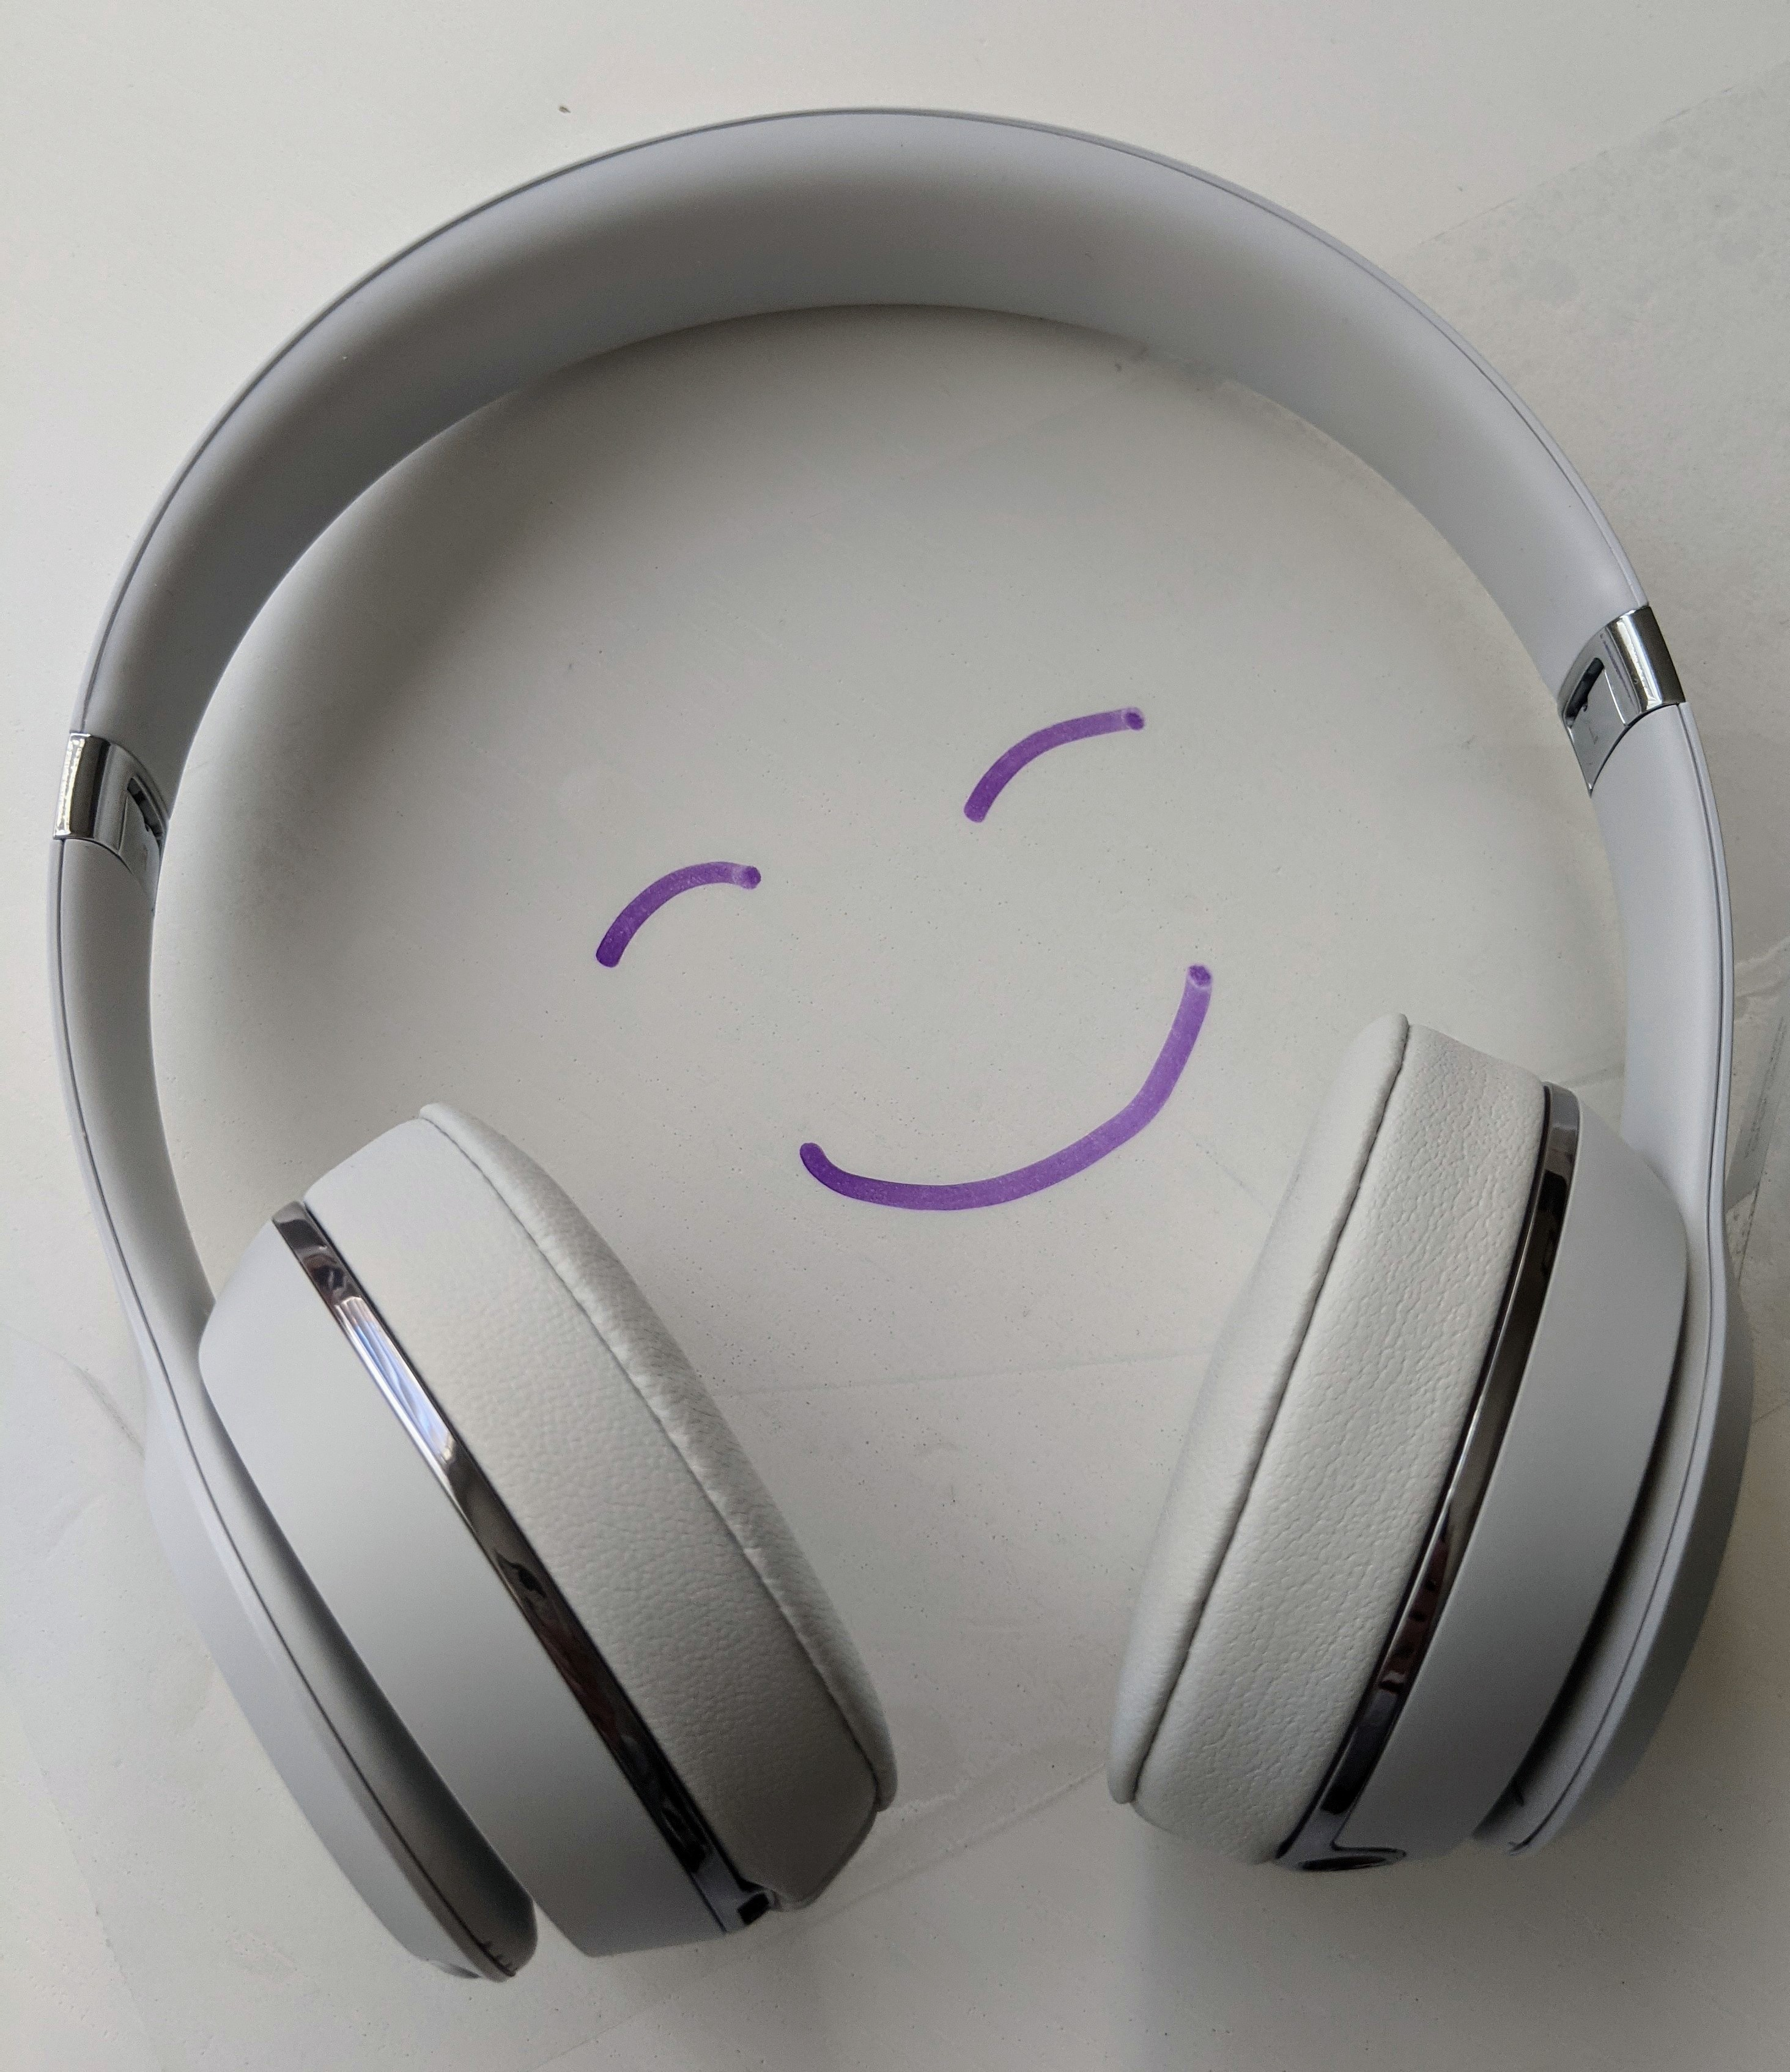 White pair of headphones with purple smiley face